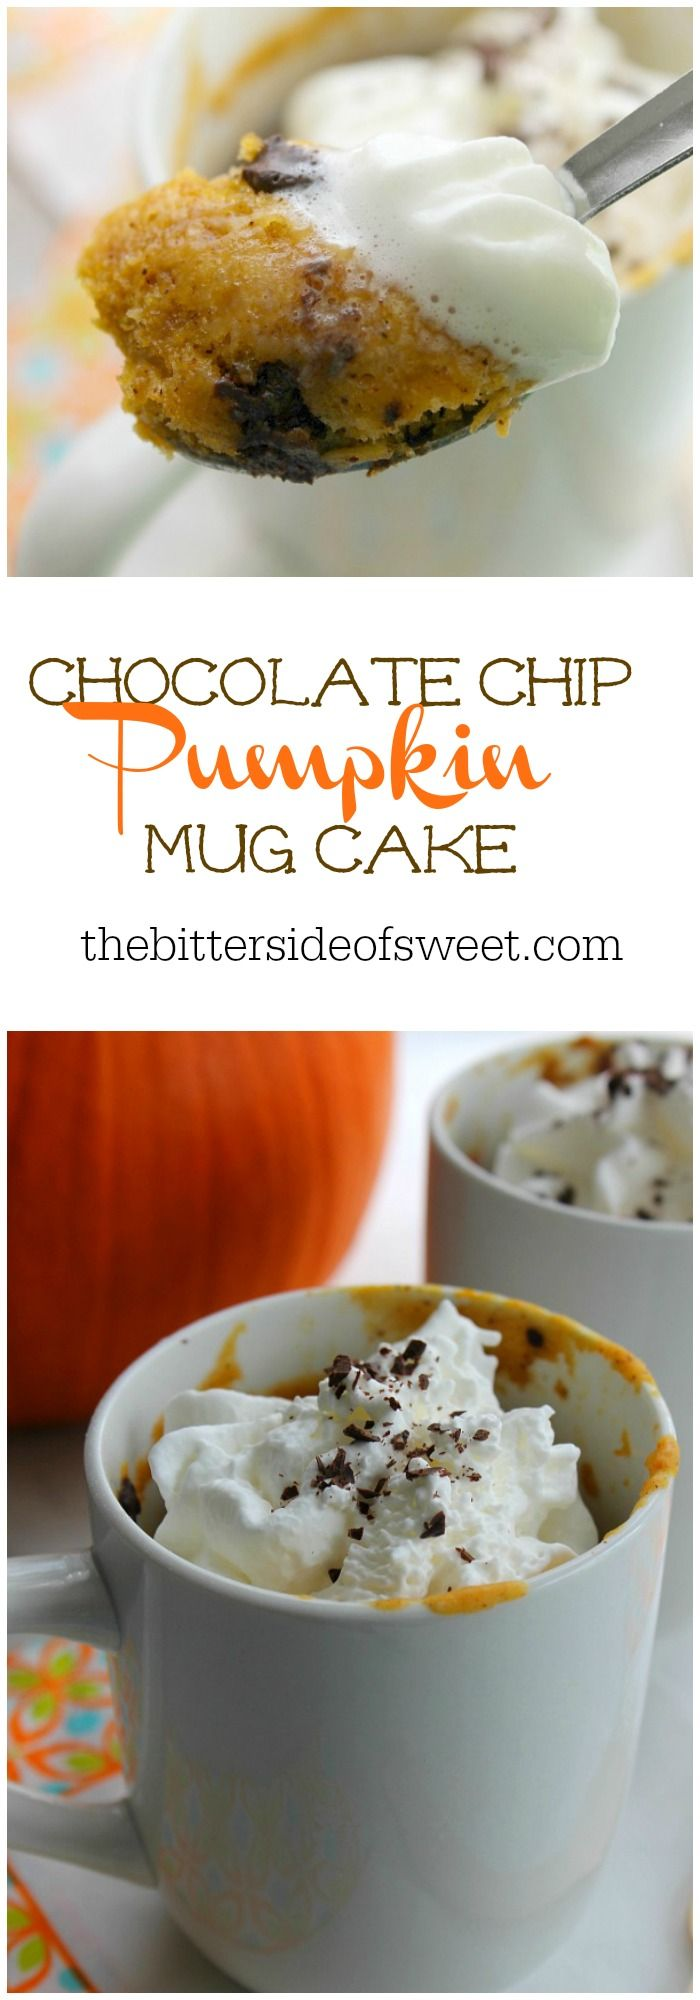 25+ best Chocolate chip mug cake ideas on Pinterest | Chocolate ...